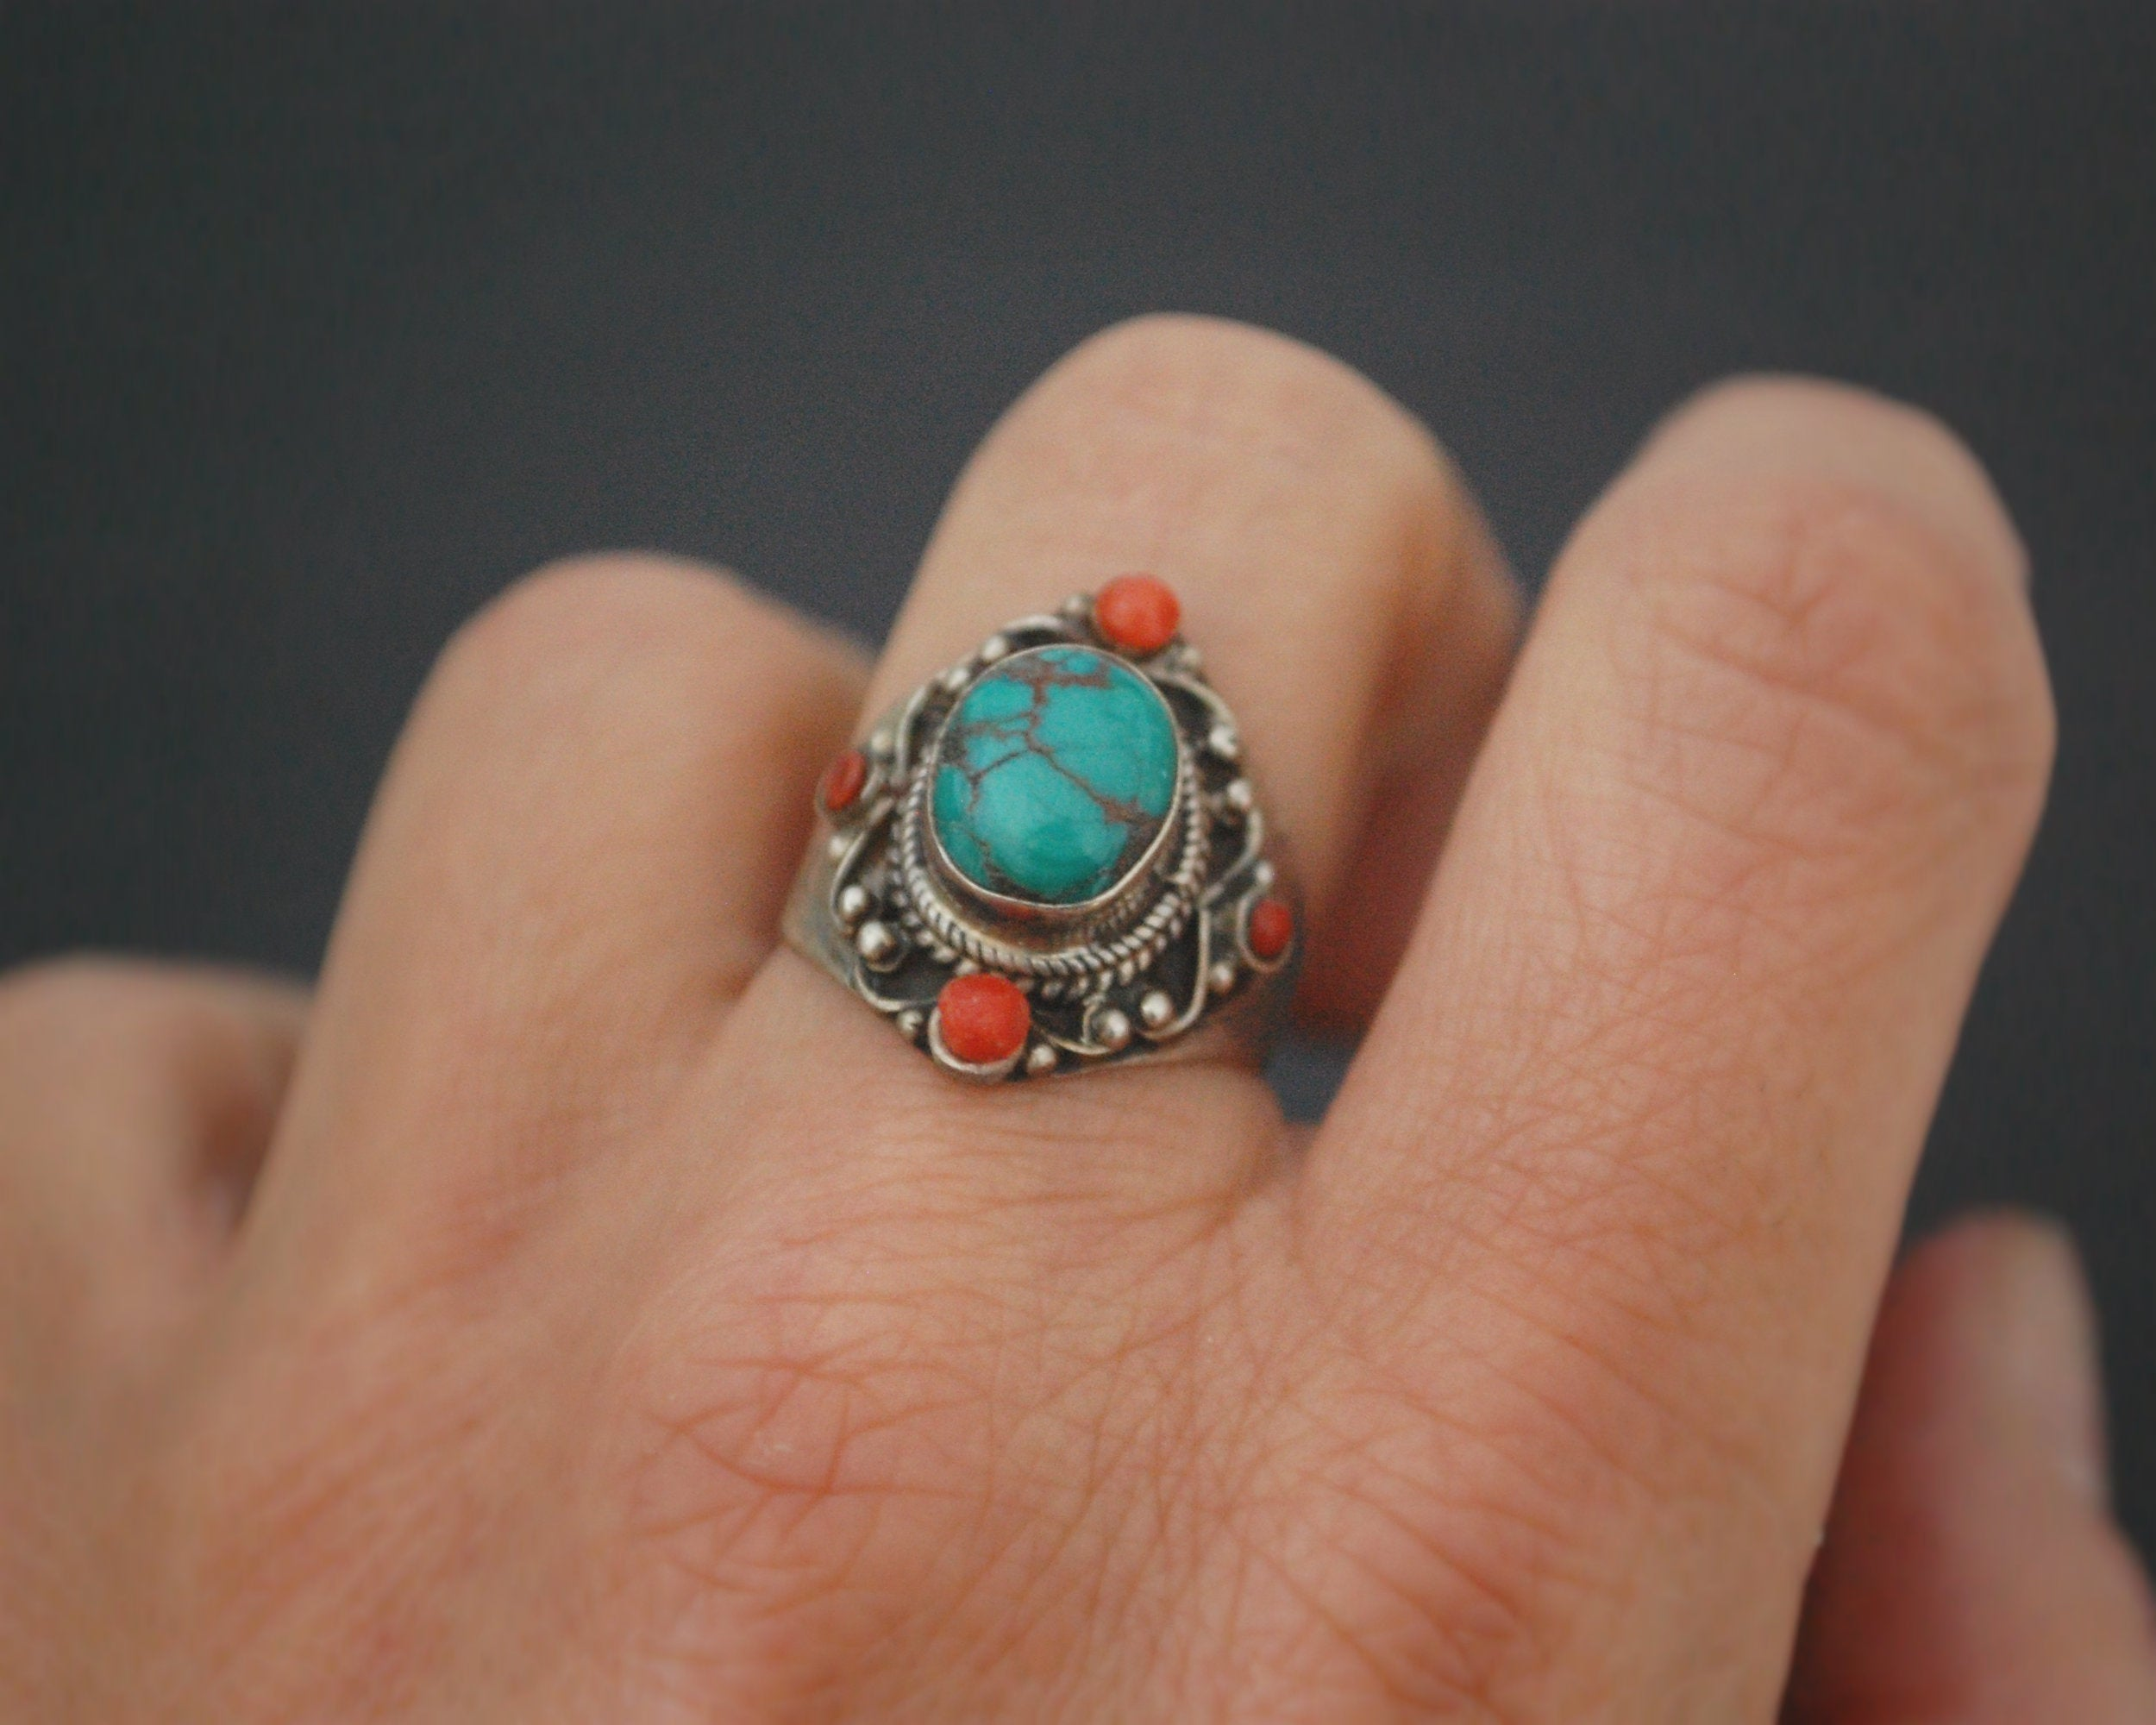 Nepali Turquoise Coral Ring - Size 6.5